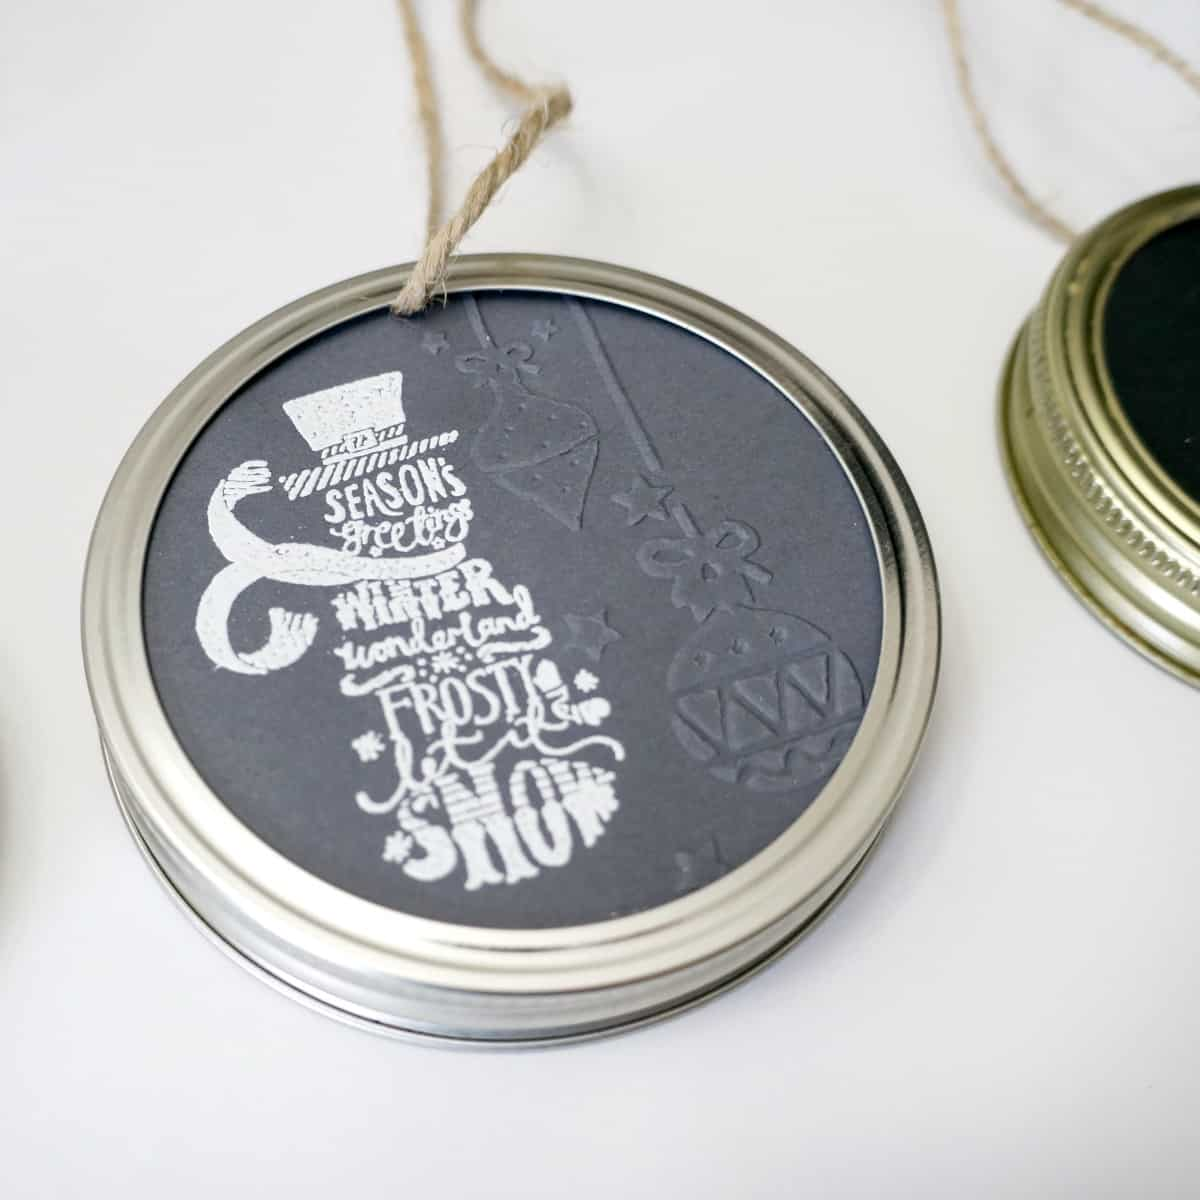 Mason jar lid ornament with paper and stamps